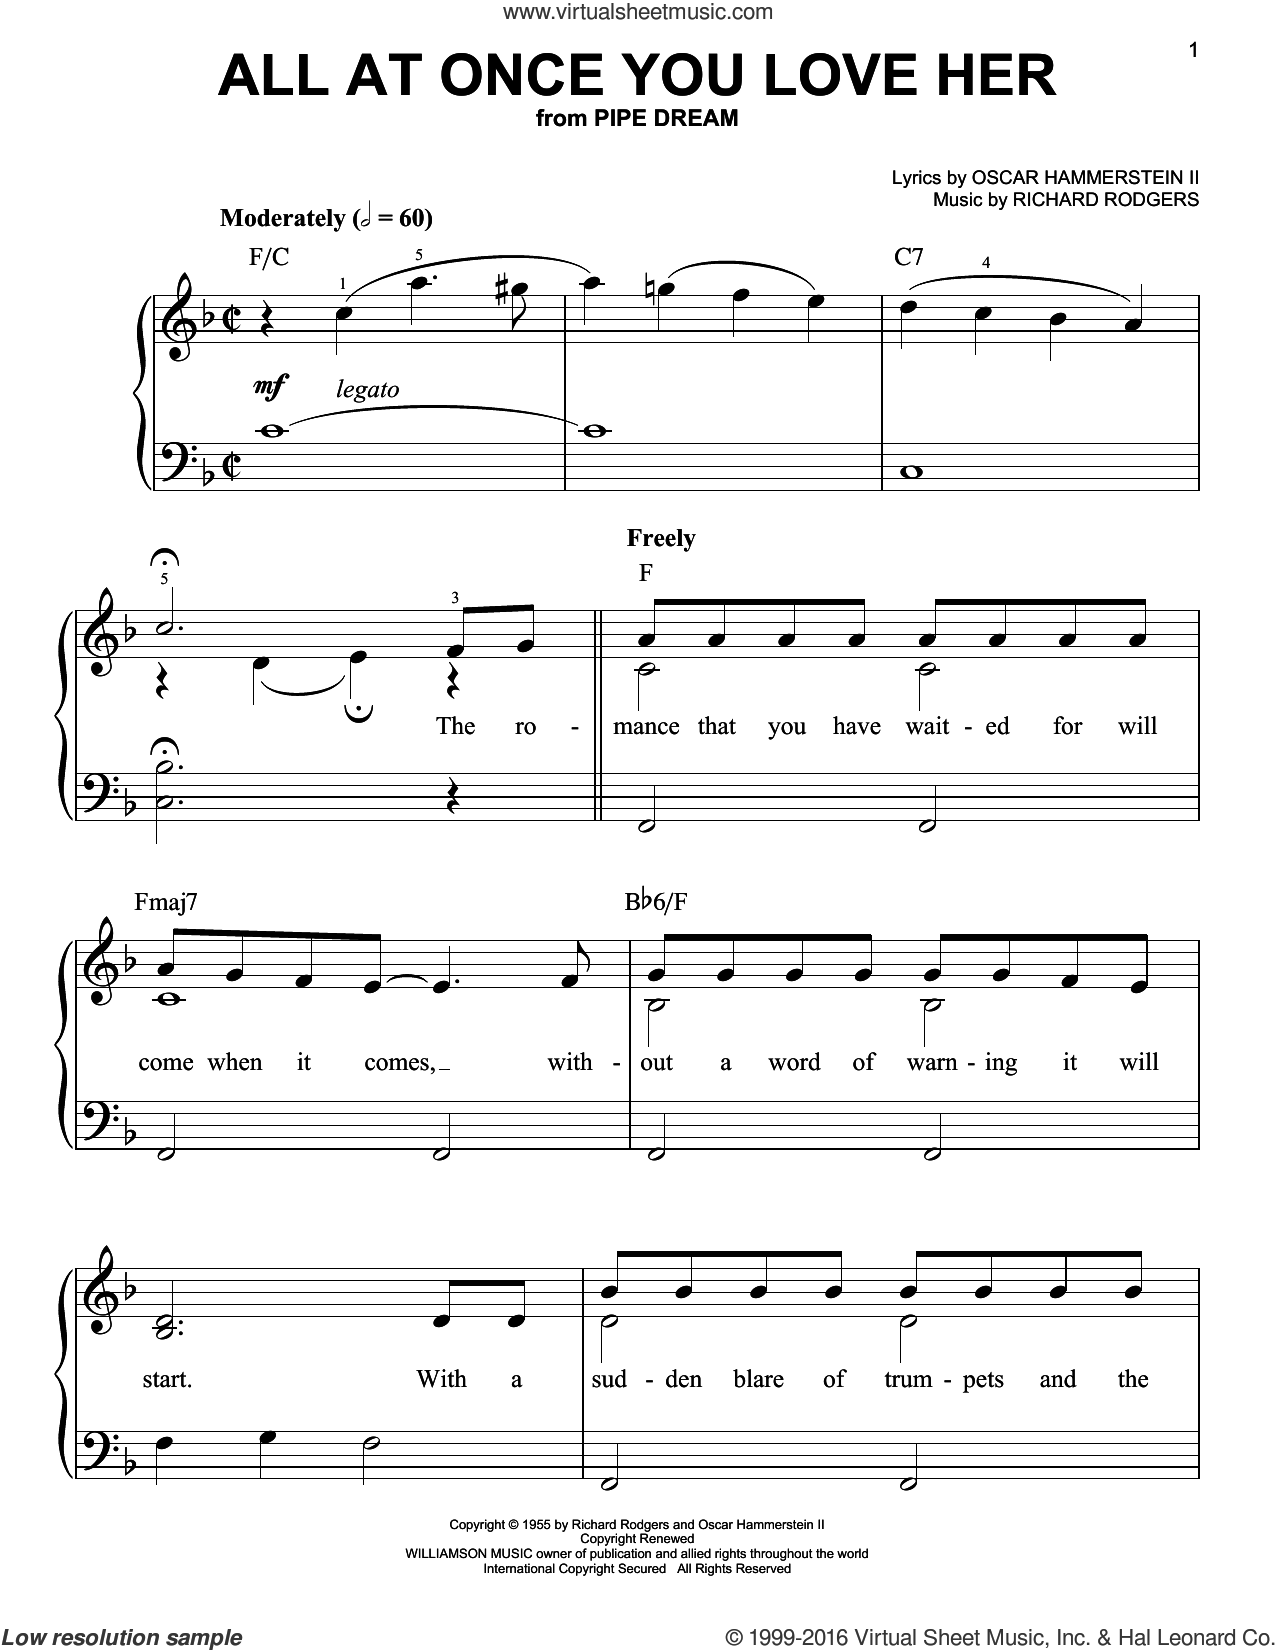 All At Once You Love Her sheet music for piano solo by Perry Como, Oscar II Hammerstein and Richard Rodgers, easy skill level